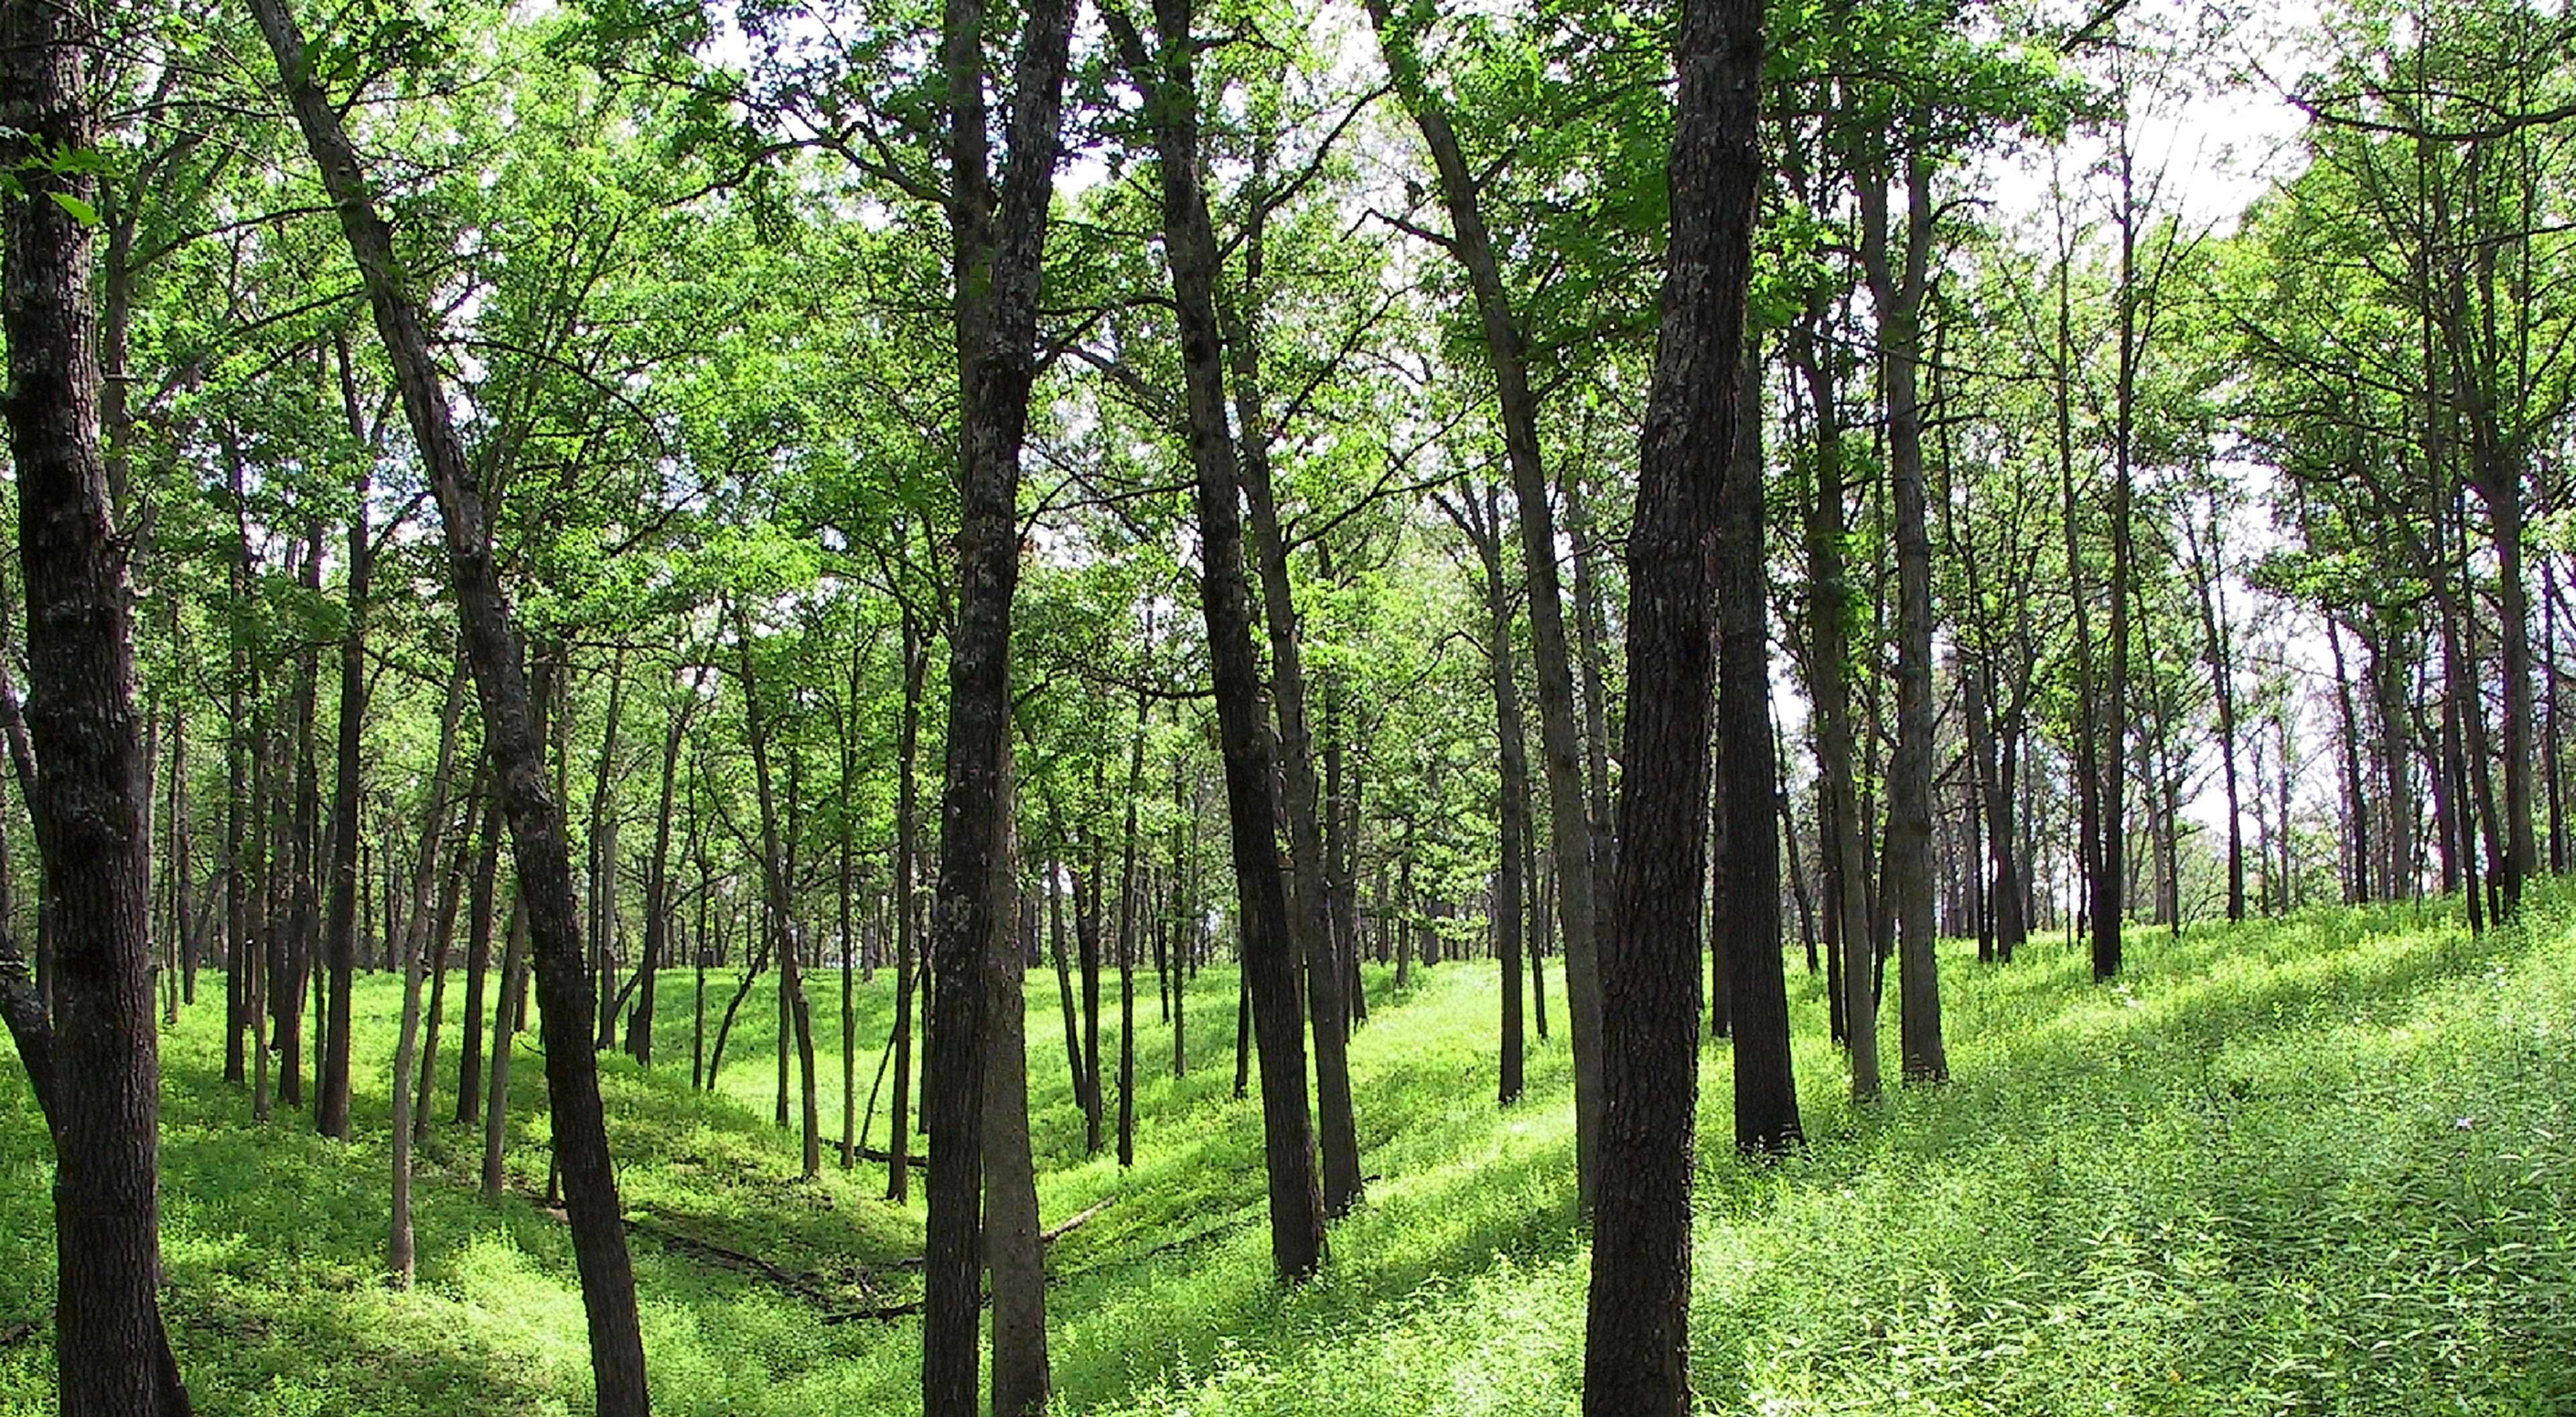 lightly forested area with bright green vegetation below